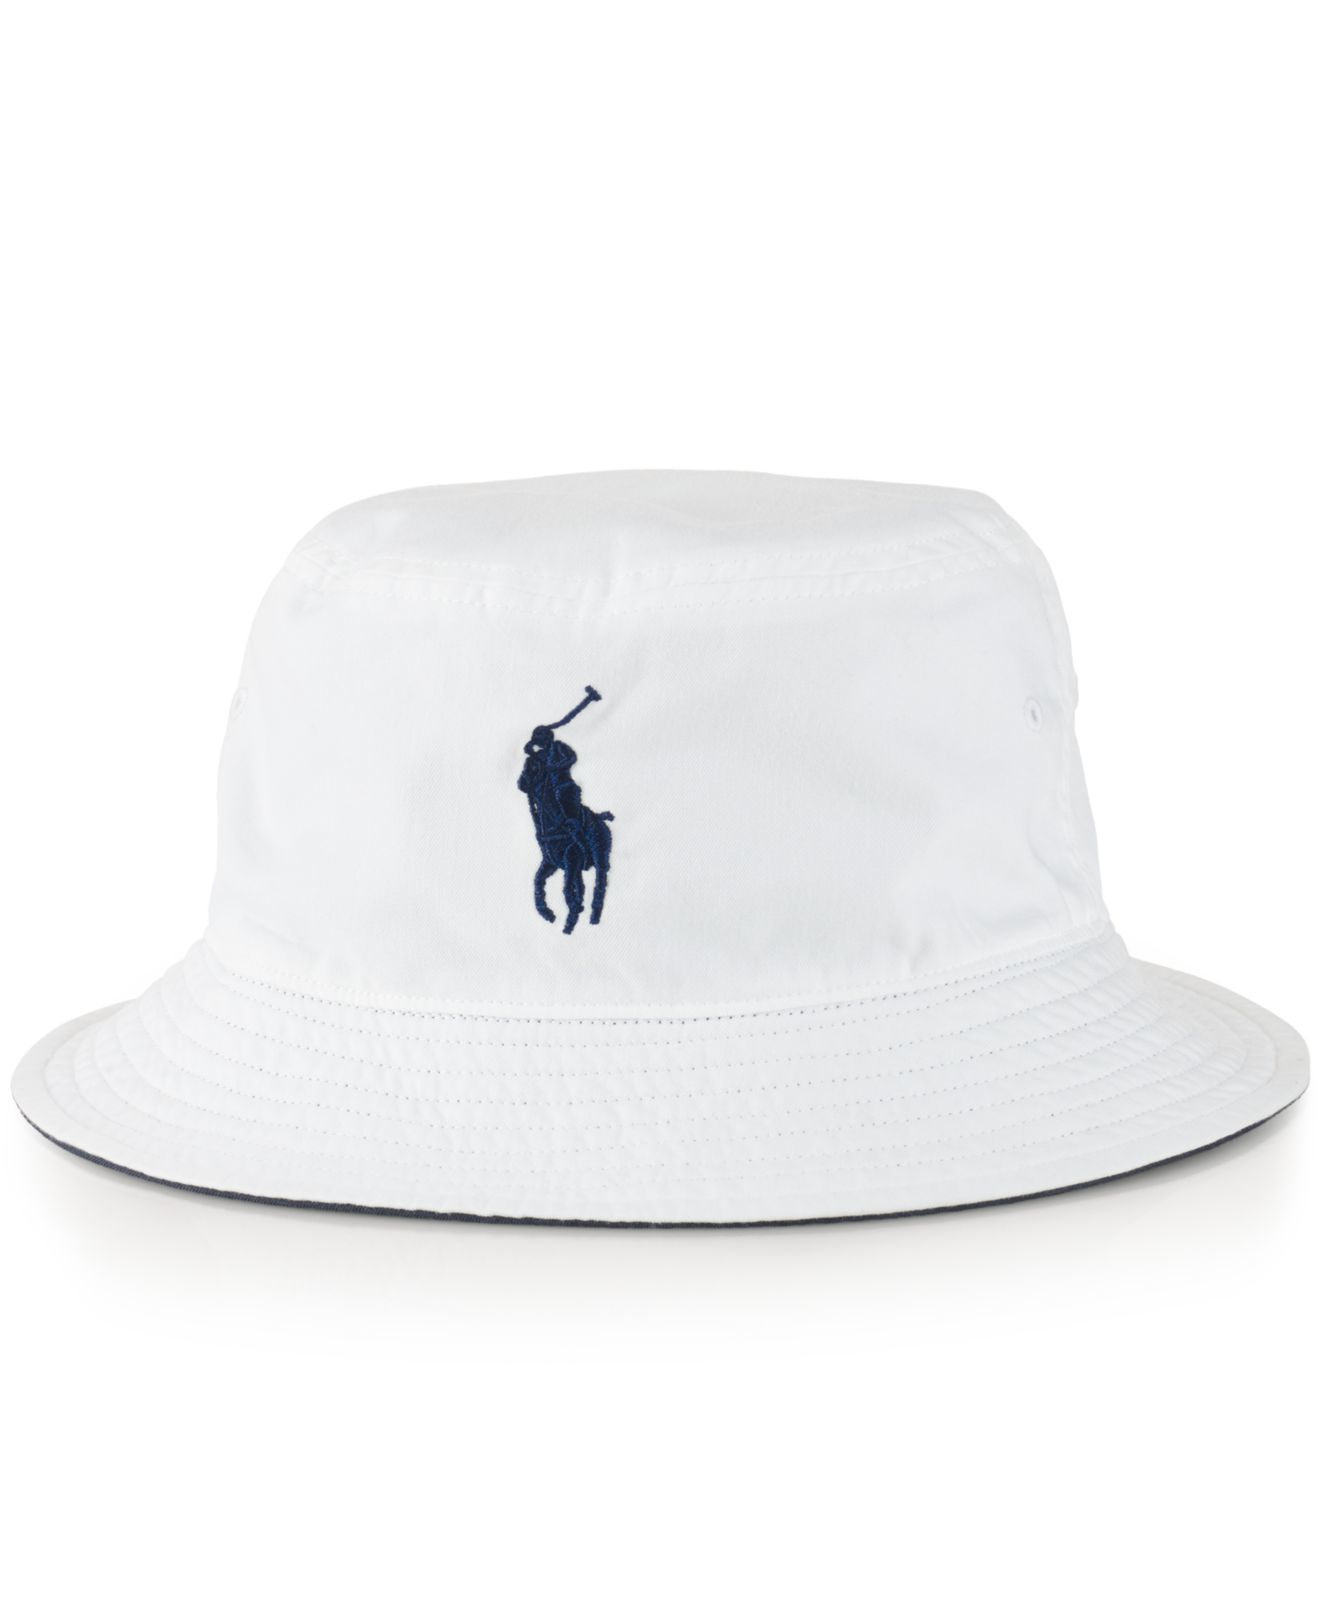 2dc72c429af Lyst Polo Ralph Lauren Us Open Chino Bucket Hat In White For Men